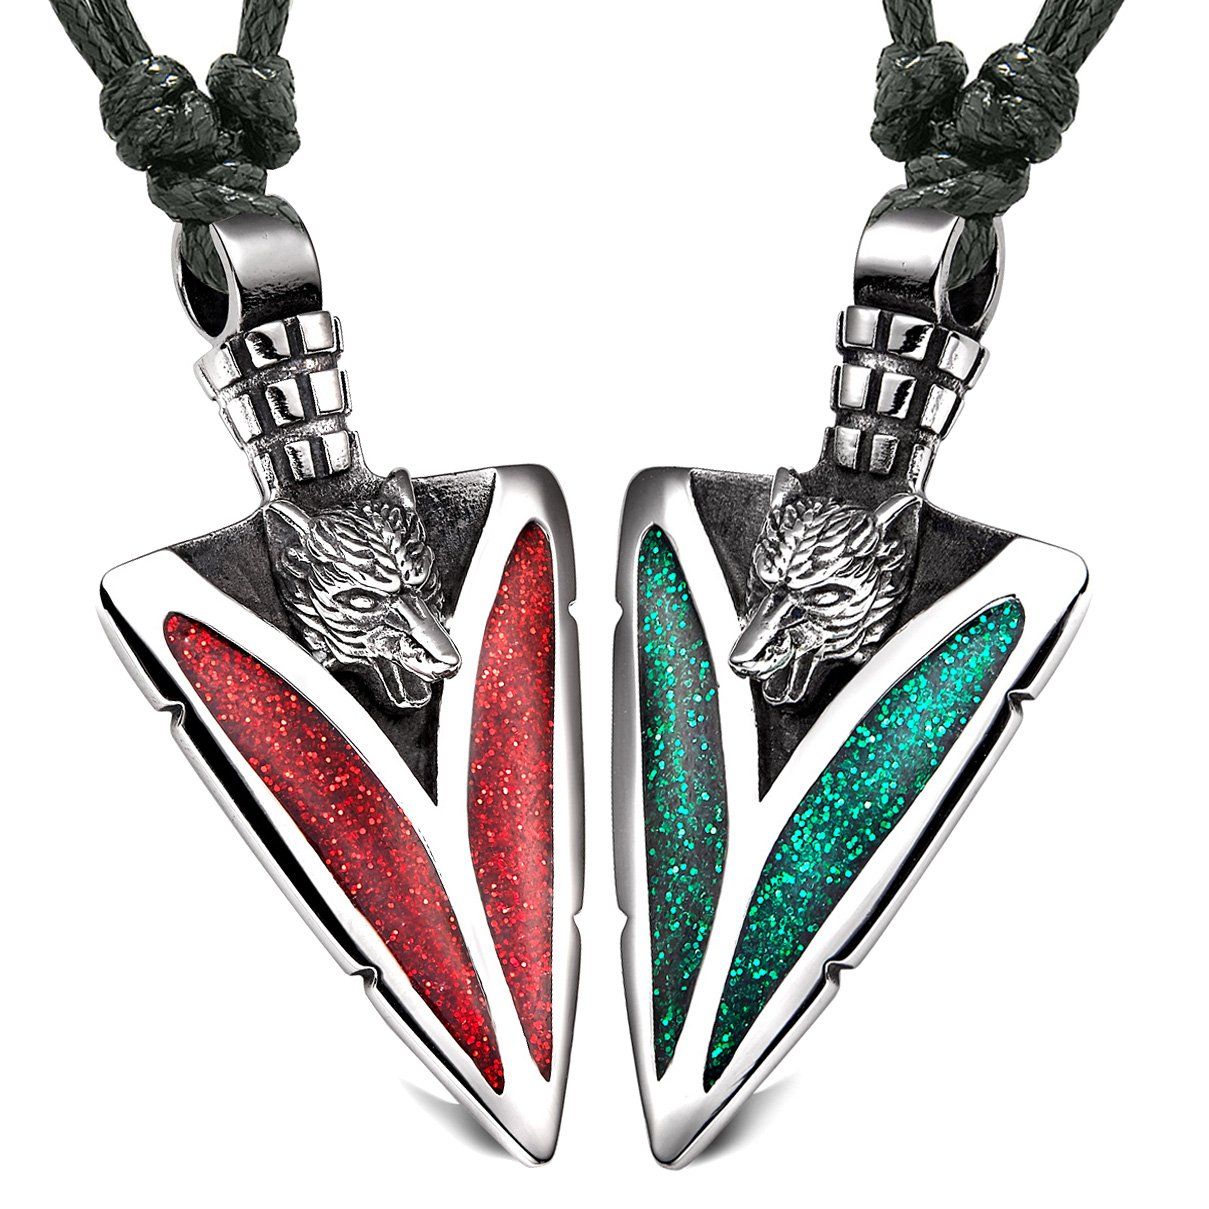 Arrowhead Howling Wolf Love Couples or BFF Set Amulets Sparkling Royal Green Red Adjustable Necklaces